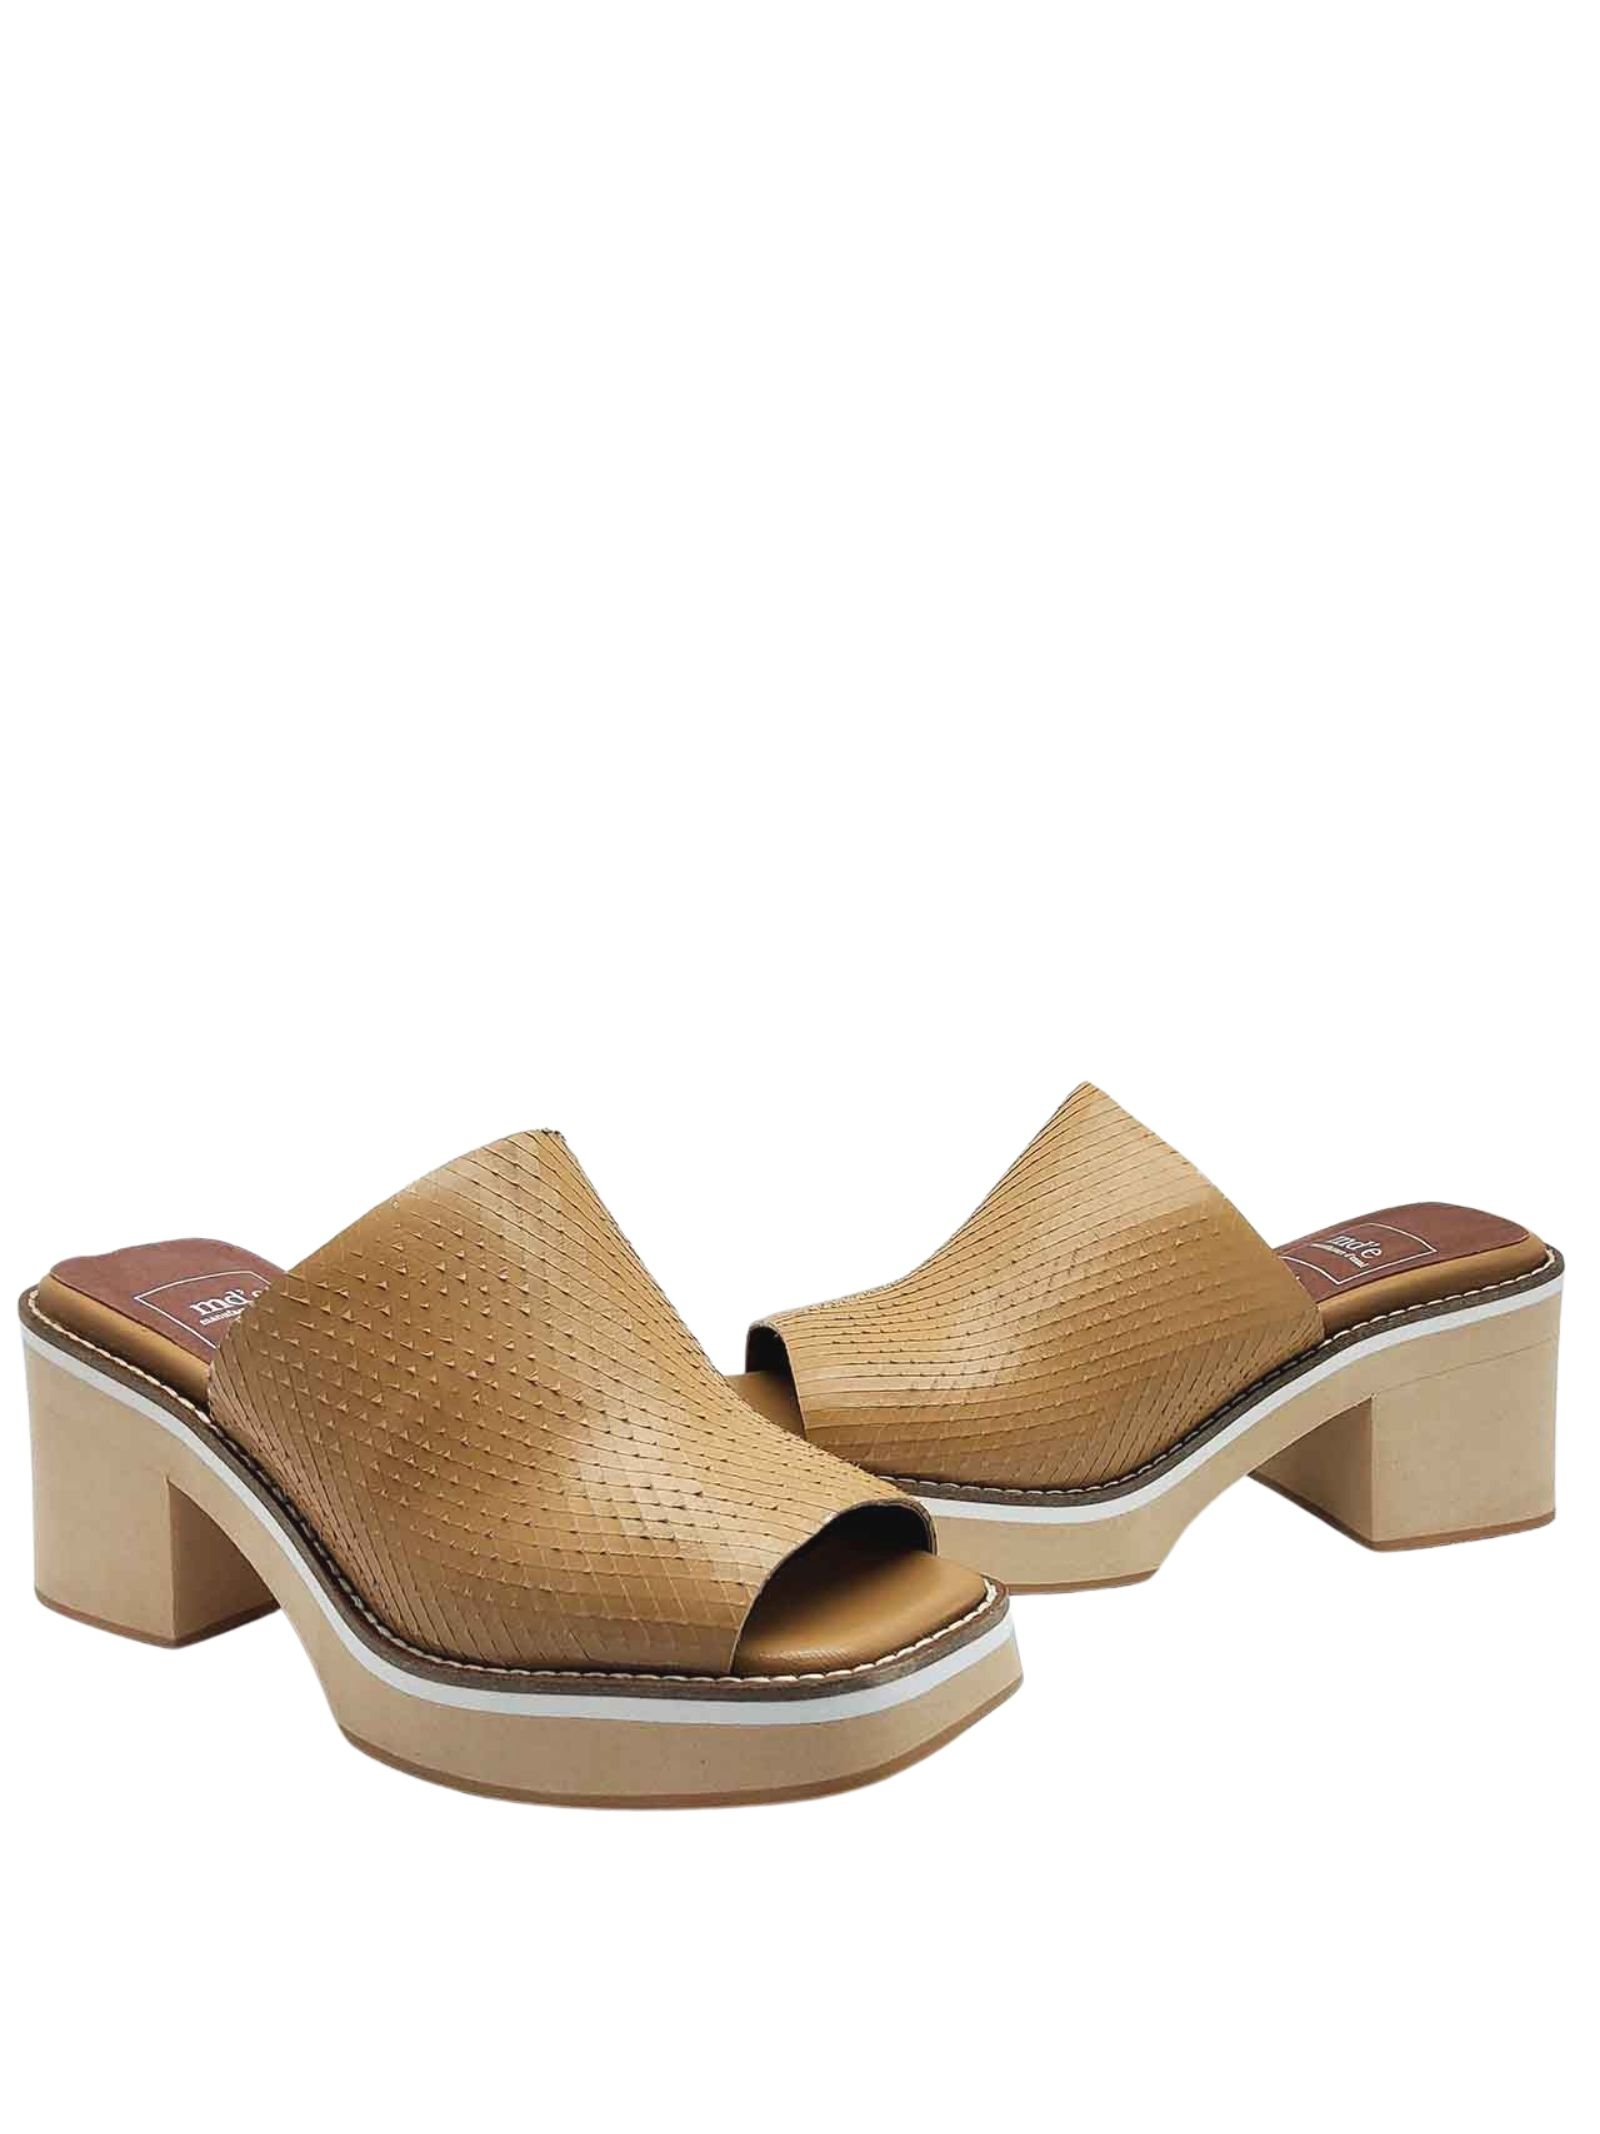 Women's Shoes Sandals in Wips Printed Leather with Ultra Light Wedge Heel Manufacture D'Essai   Wedge Sandals   43014